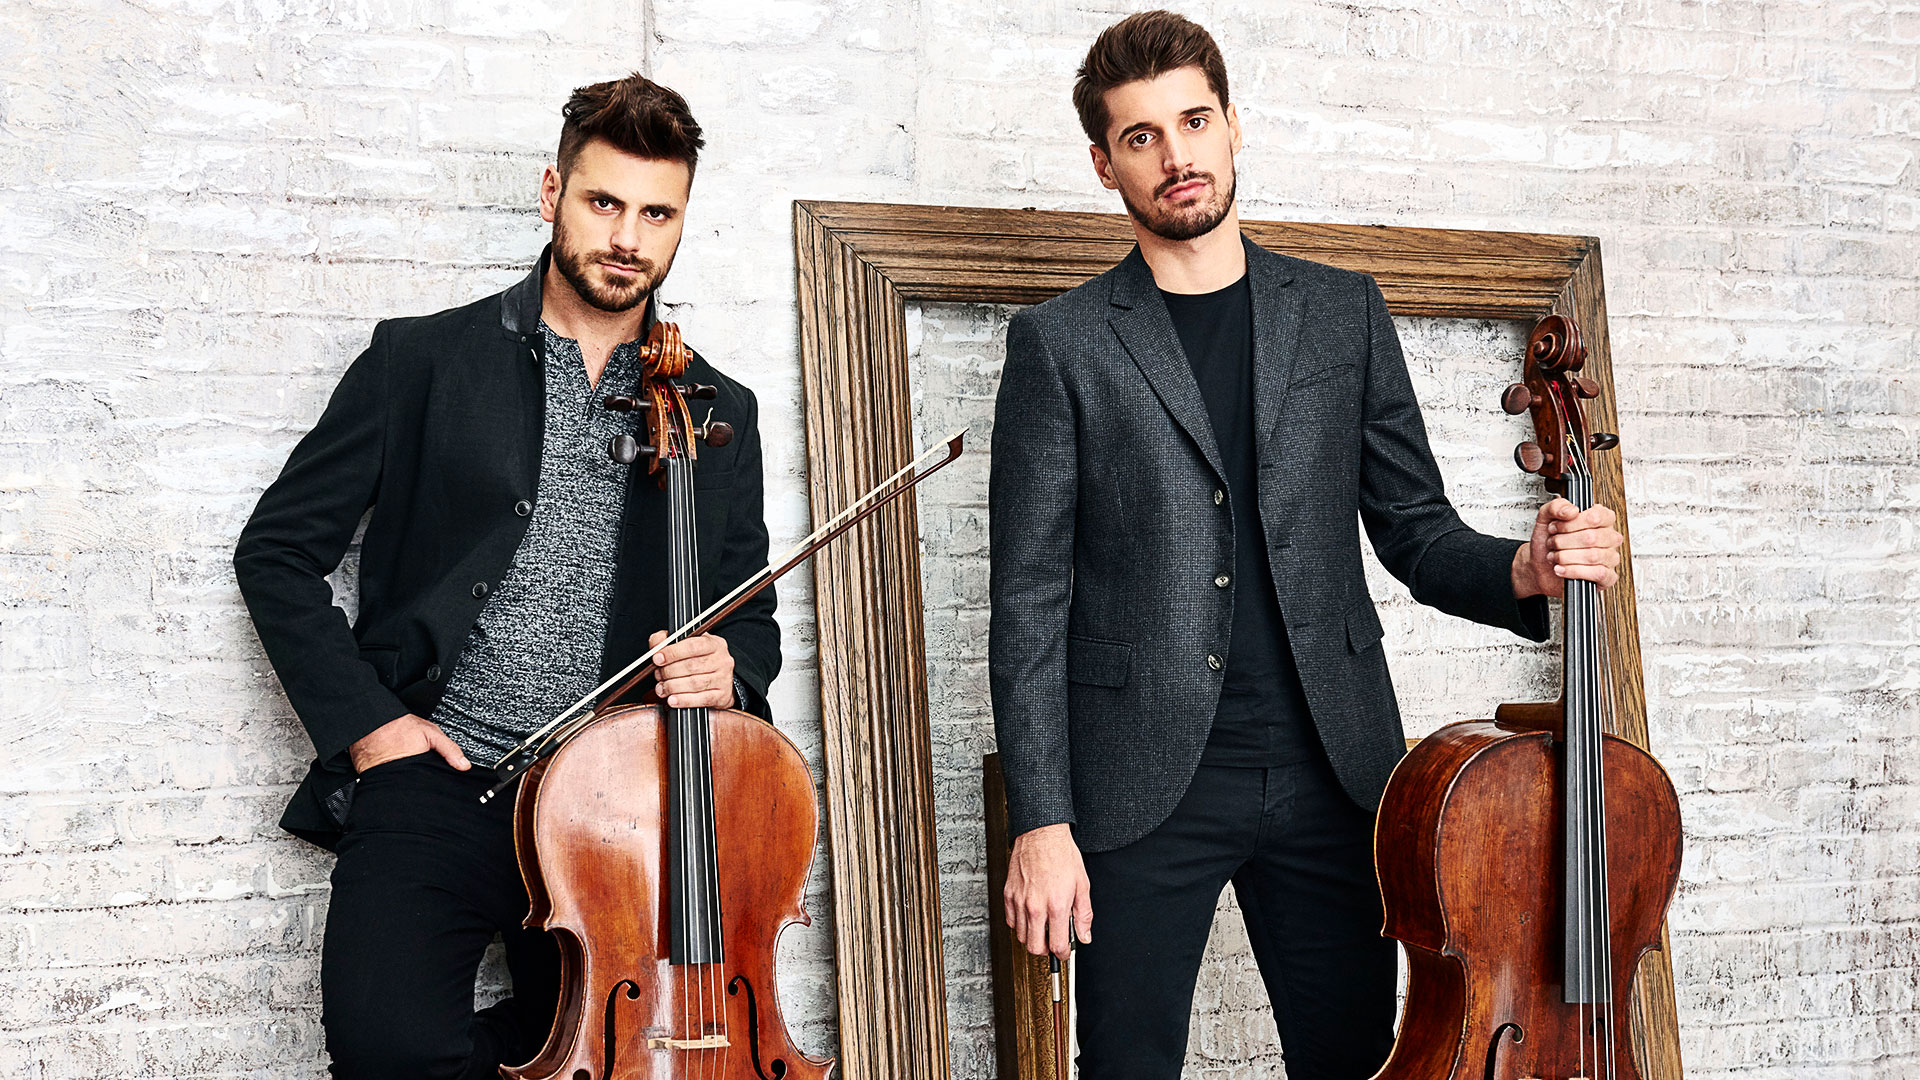 Soaring to New Heights With 2Cellos